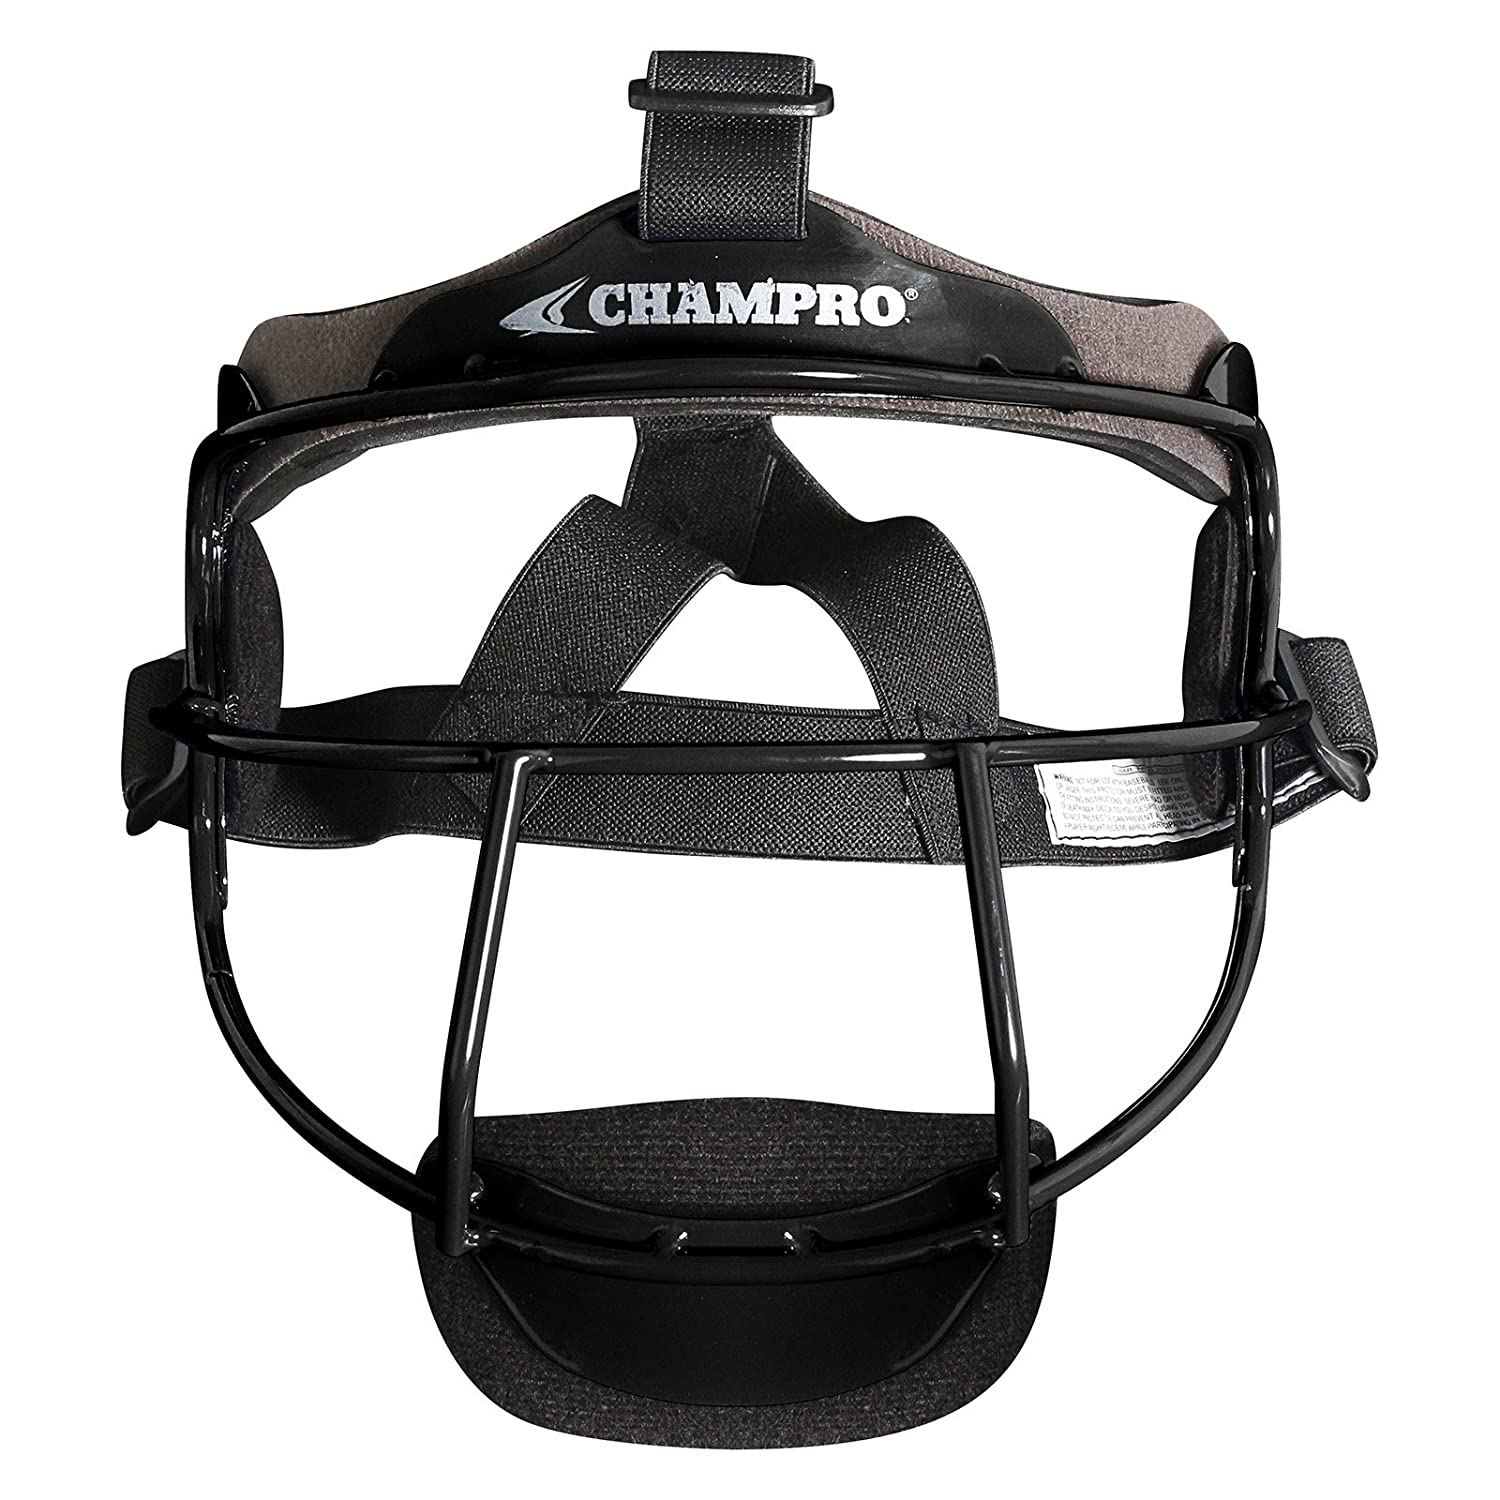 7c69f40f3 Amazon.com   Champro The Grill Defensive Fielder s Facemask   Sports    Outdoors